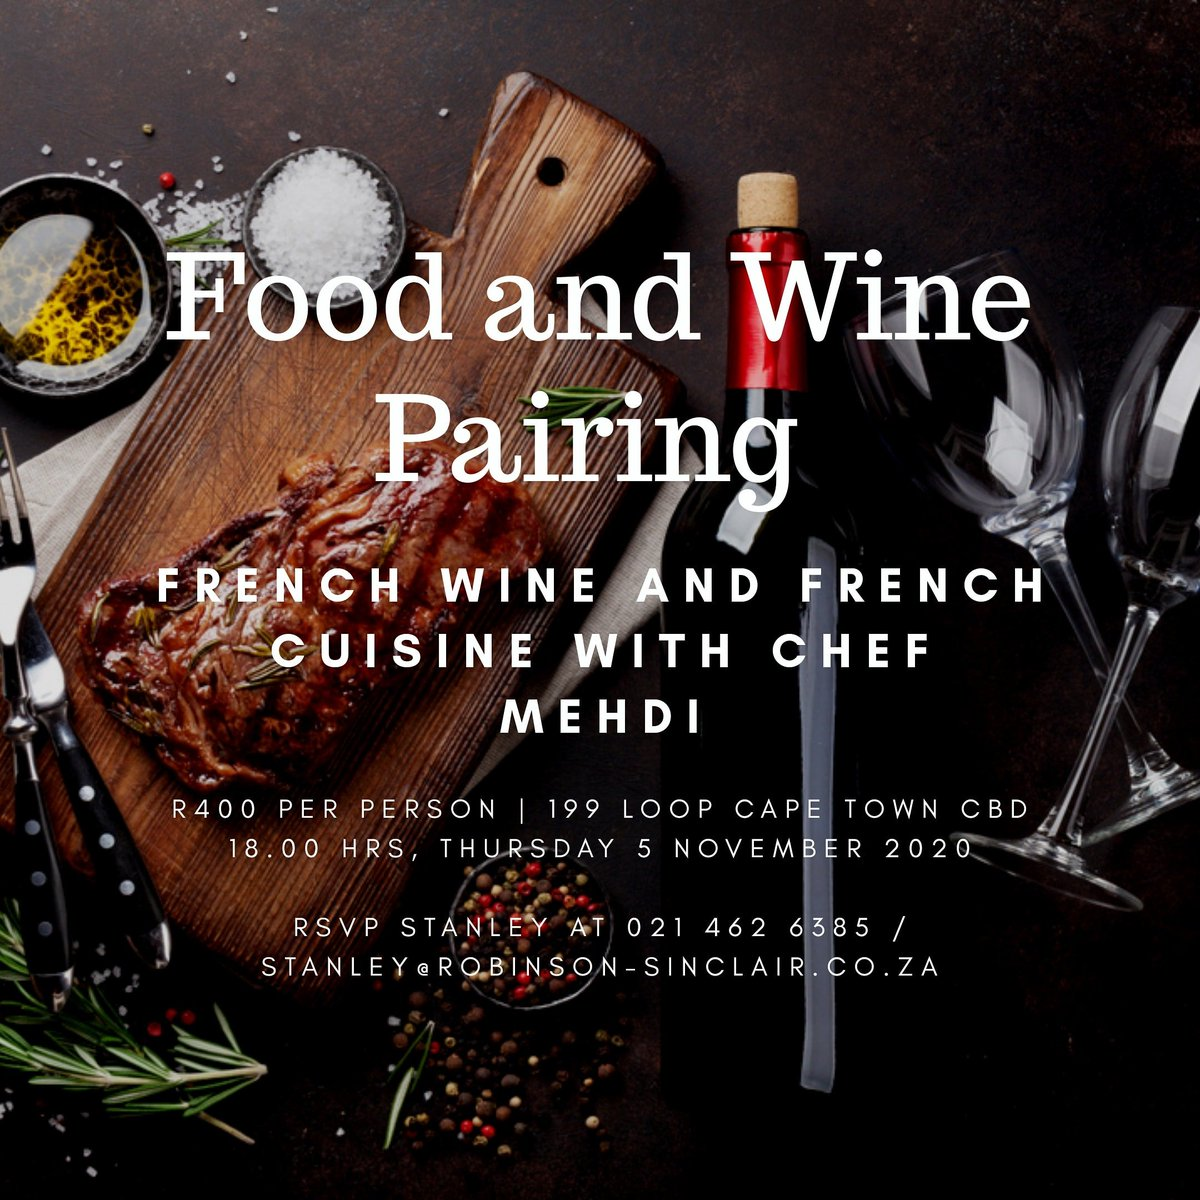 Indulge in our French Food and Wine Pairing with Chef Mehdi  R400 per person 18.00 HRS, THURSDAY 5 NOVEMBER 2020  RSVP STANLEY AT 021 462 6385 / 082 301 4968 STANLEY@ROBINSON-SINCLAIR.CO.ZA  The Wine Shop Shop 2, 199 Loop Street Cape Town CBD  #wine #foodandwine #food #foodie https://t.co/EQHRASoNod